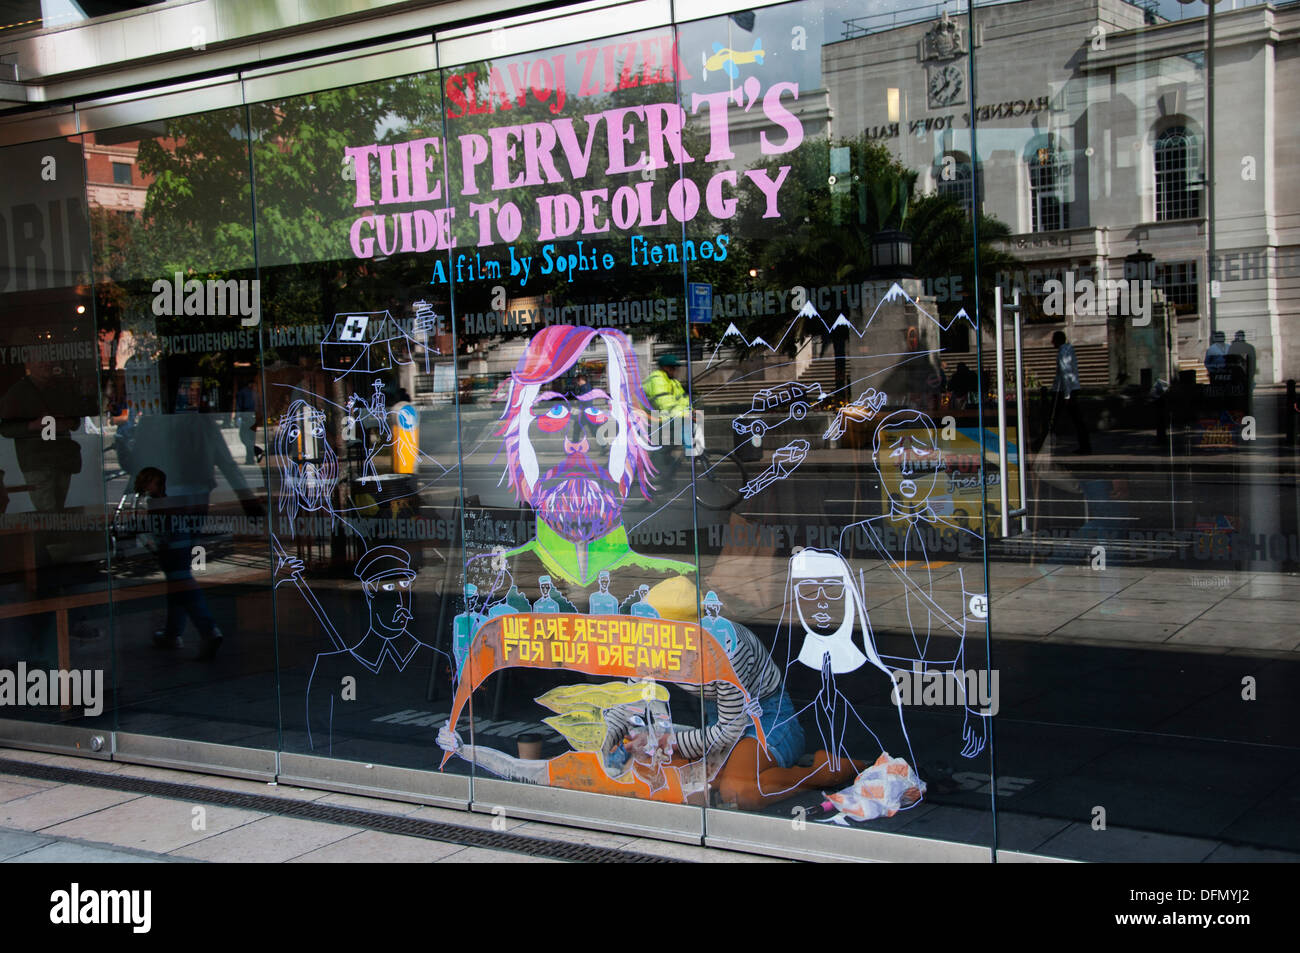 Hackney Picture House cinema. A hand painted window advertising Zizek's Perverts guide to ideology. - Stock Image